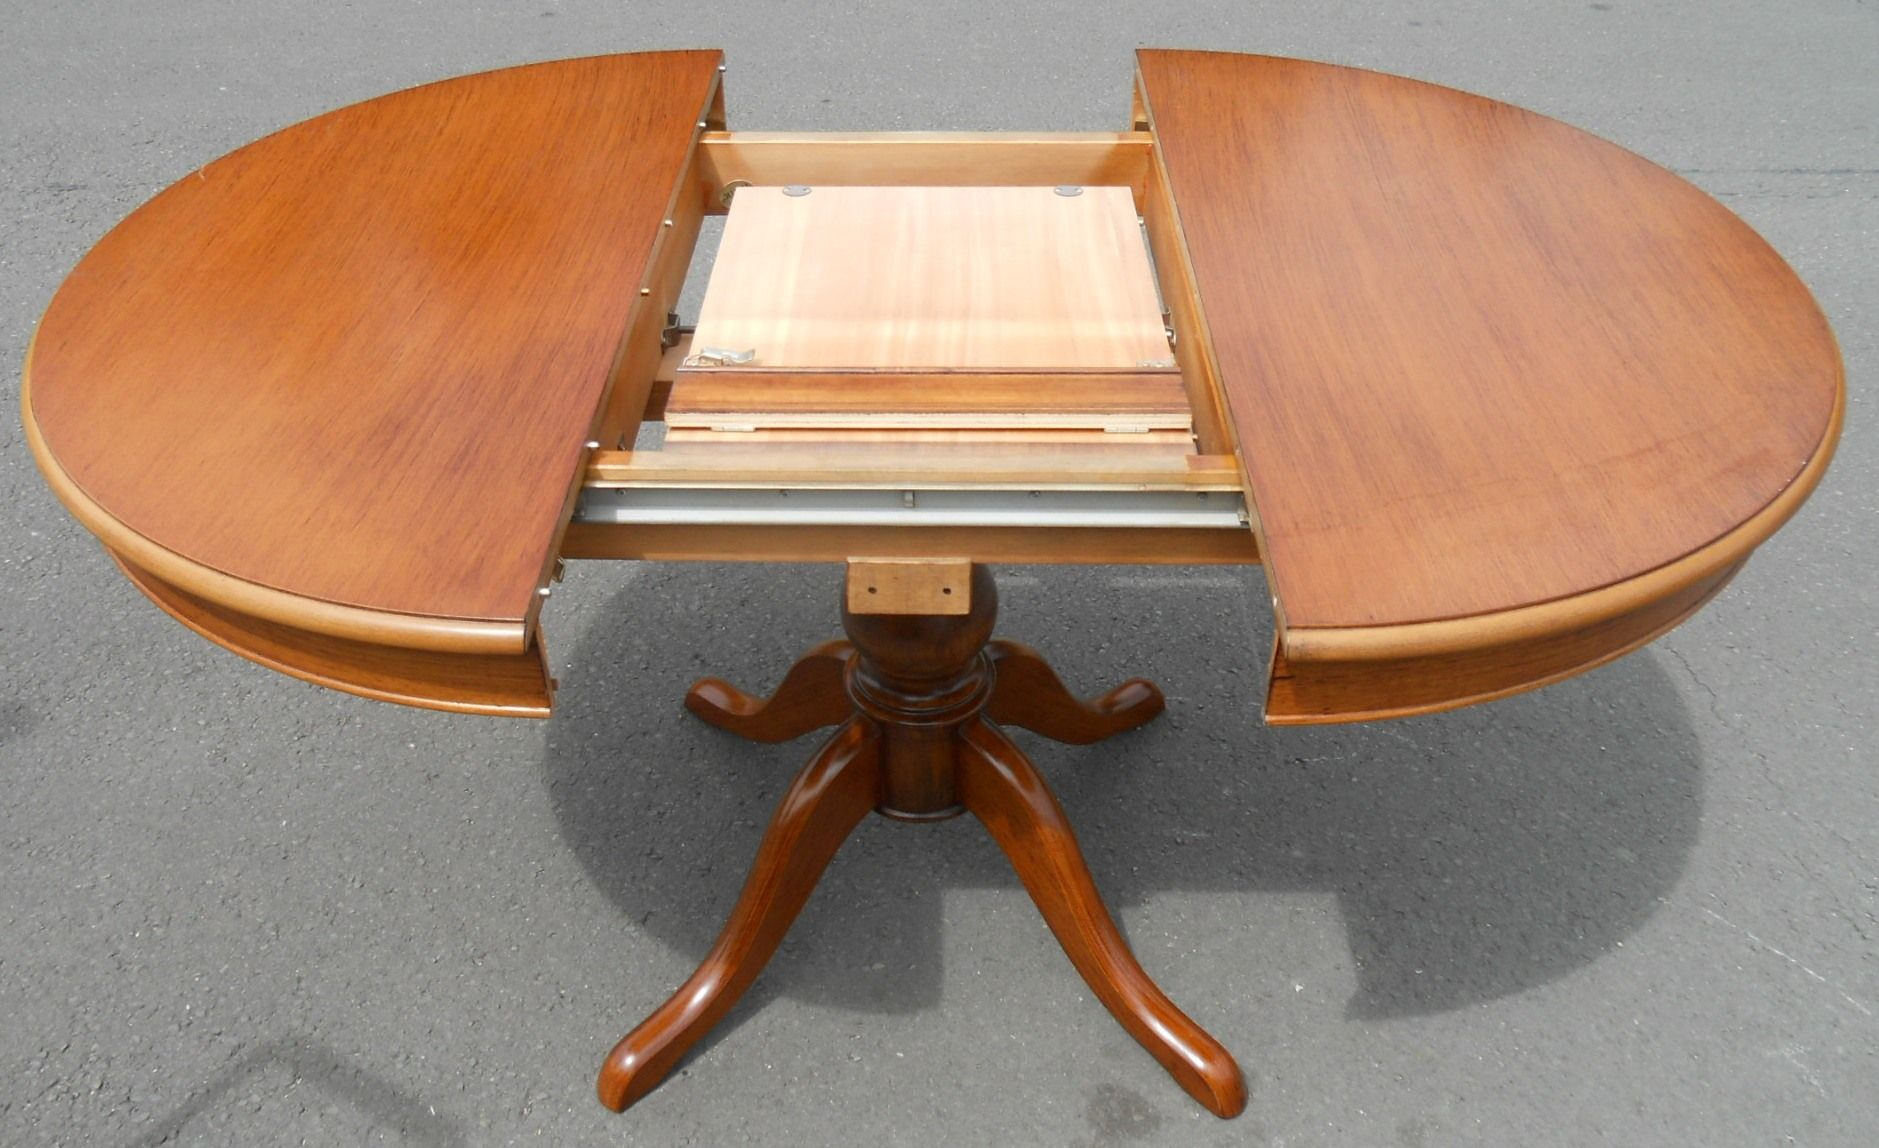 Sold Victorian Style Round Mahogany Pedestal Dining